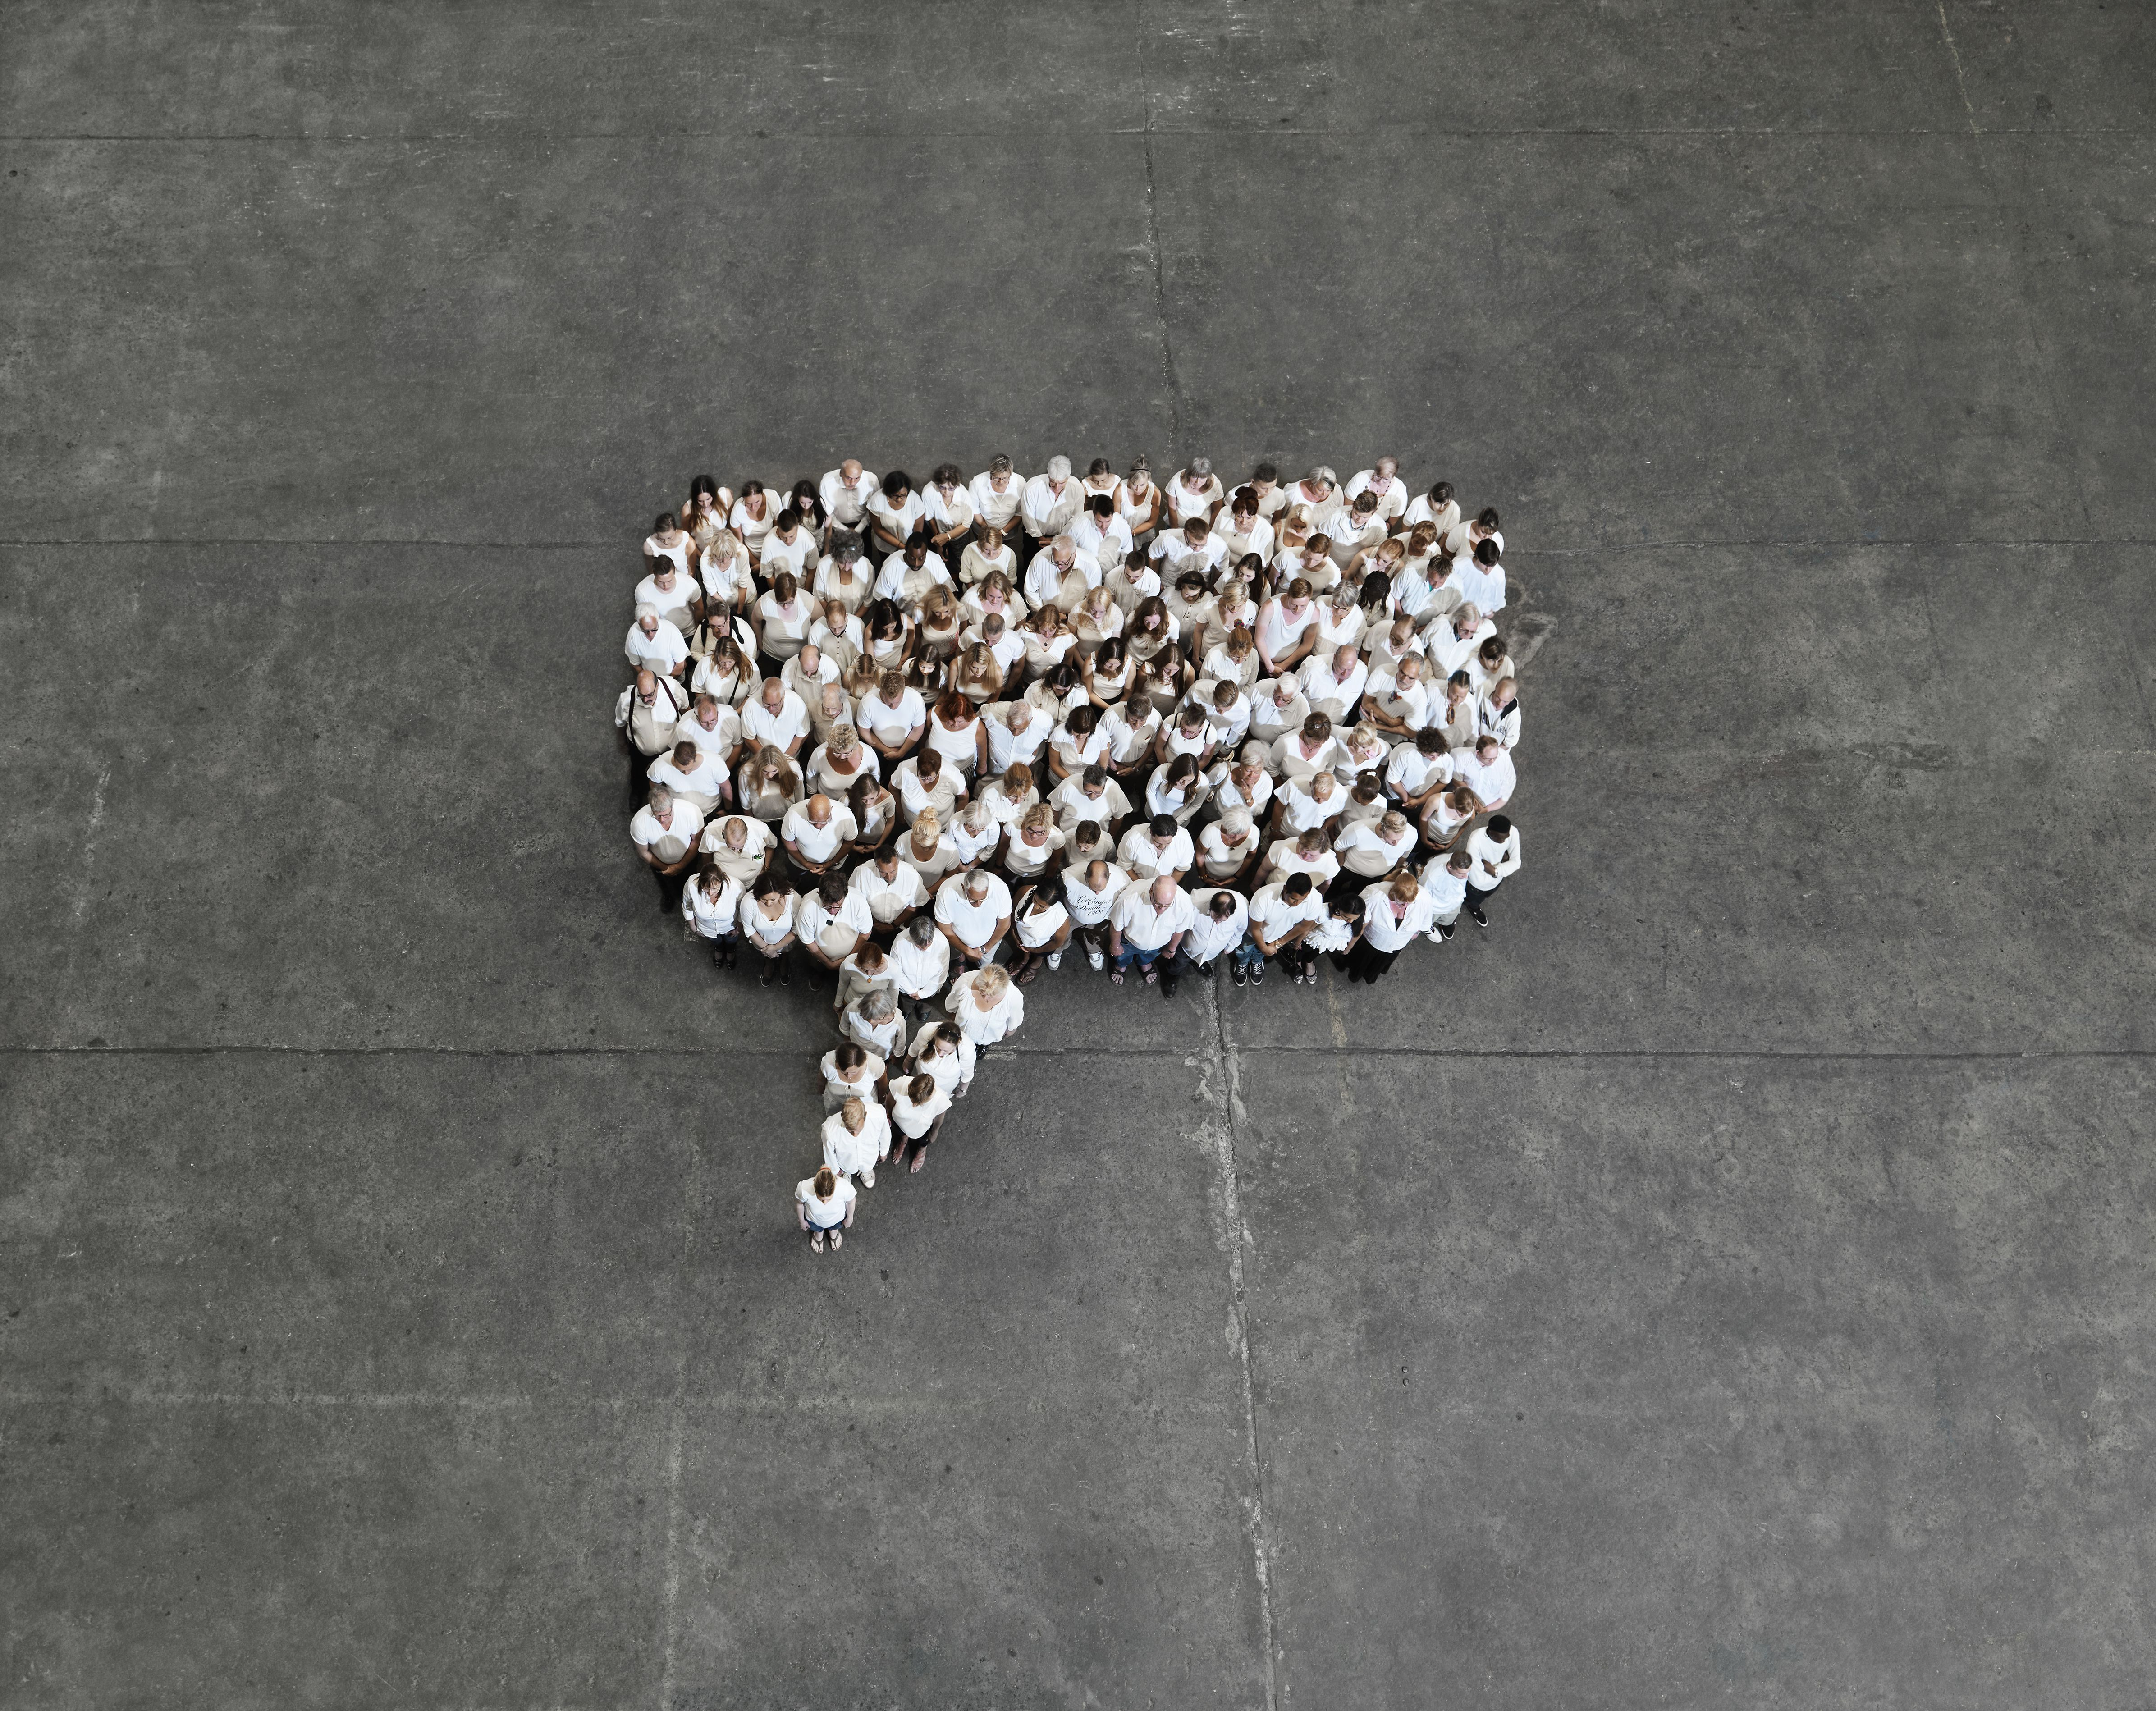 an aerial shot of people standing in the shape of a cartoon quote